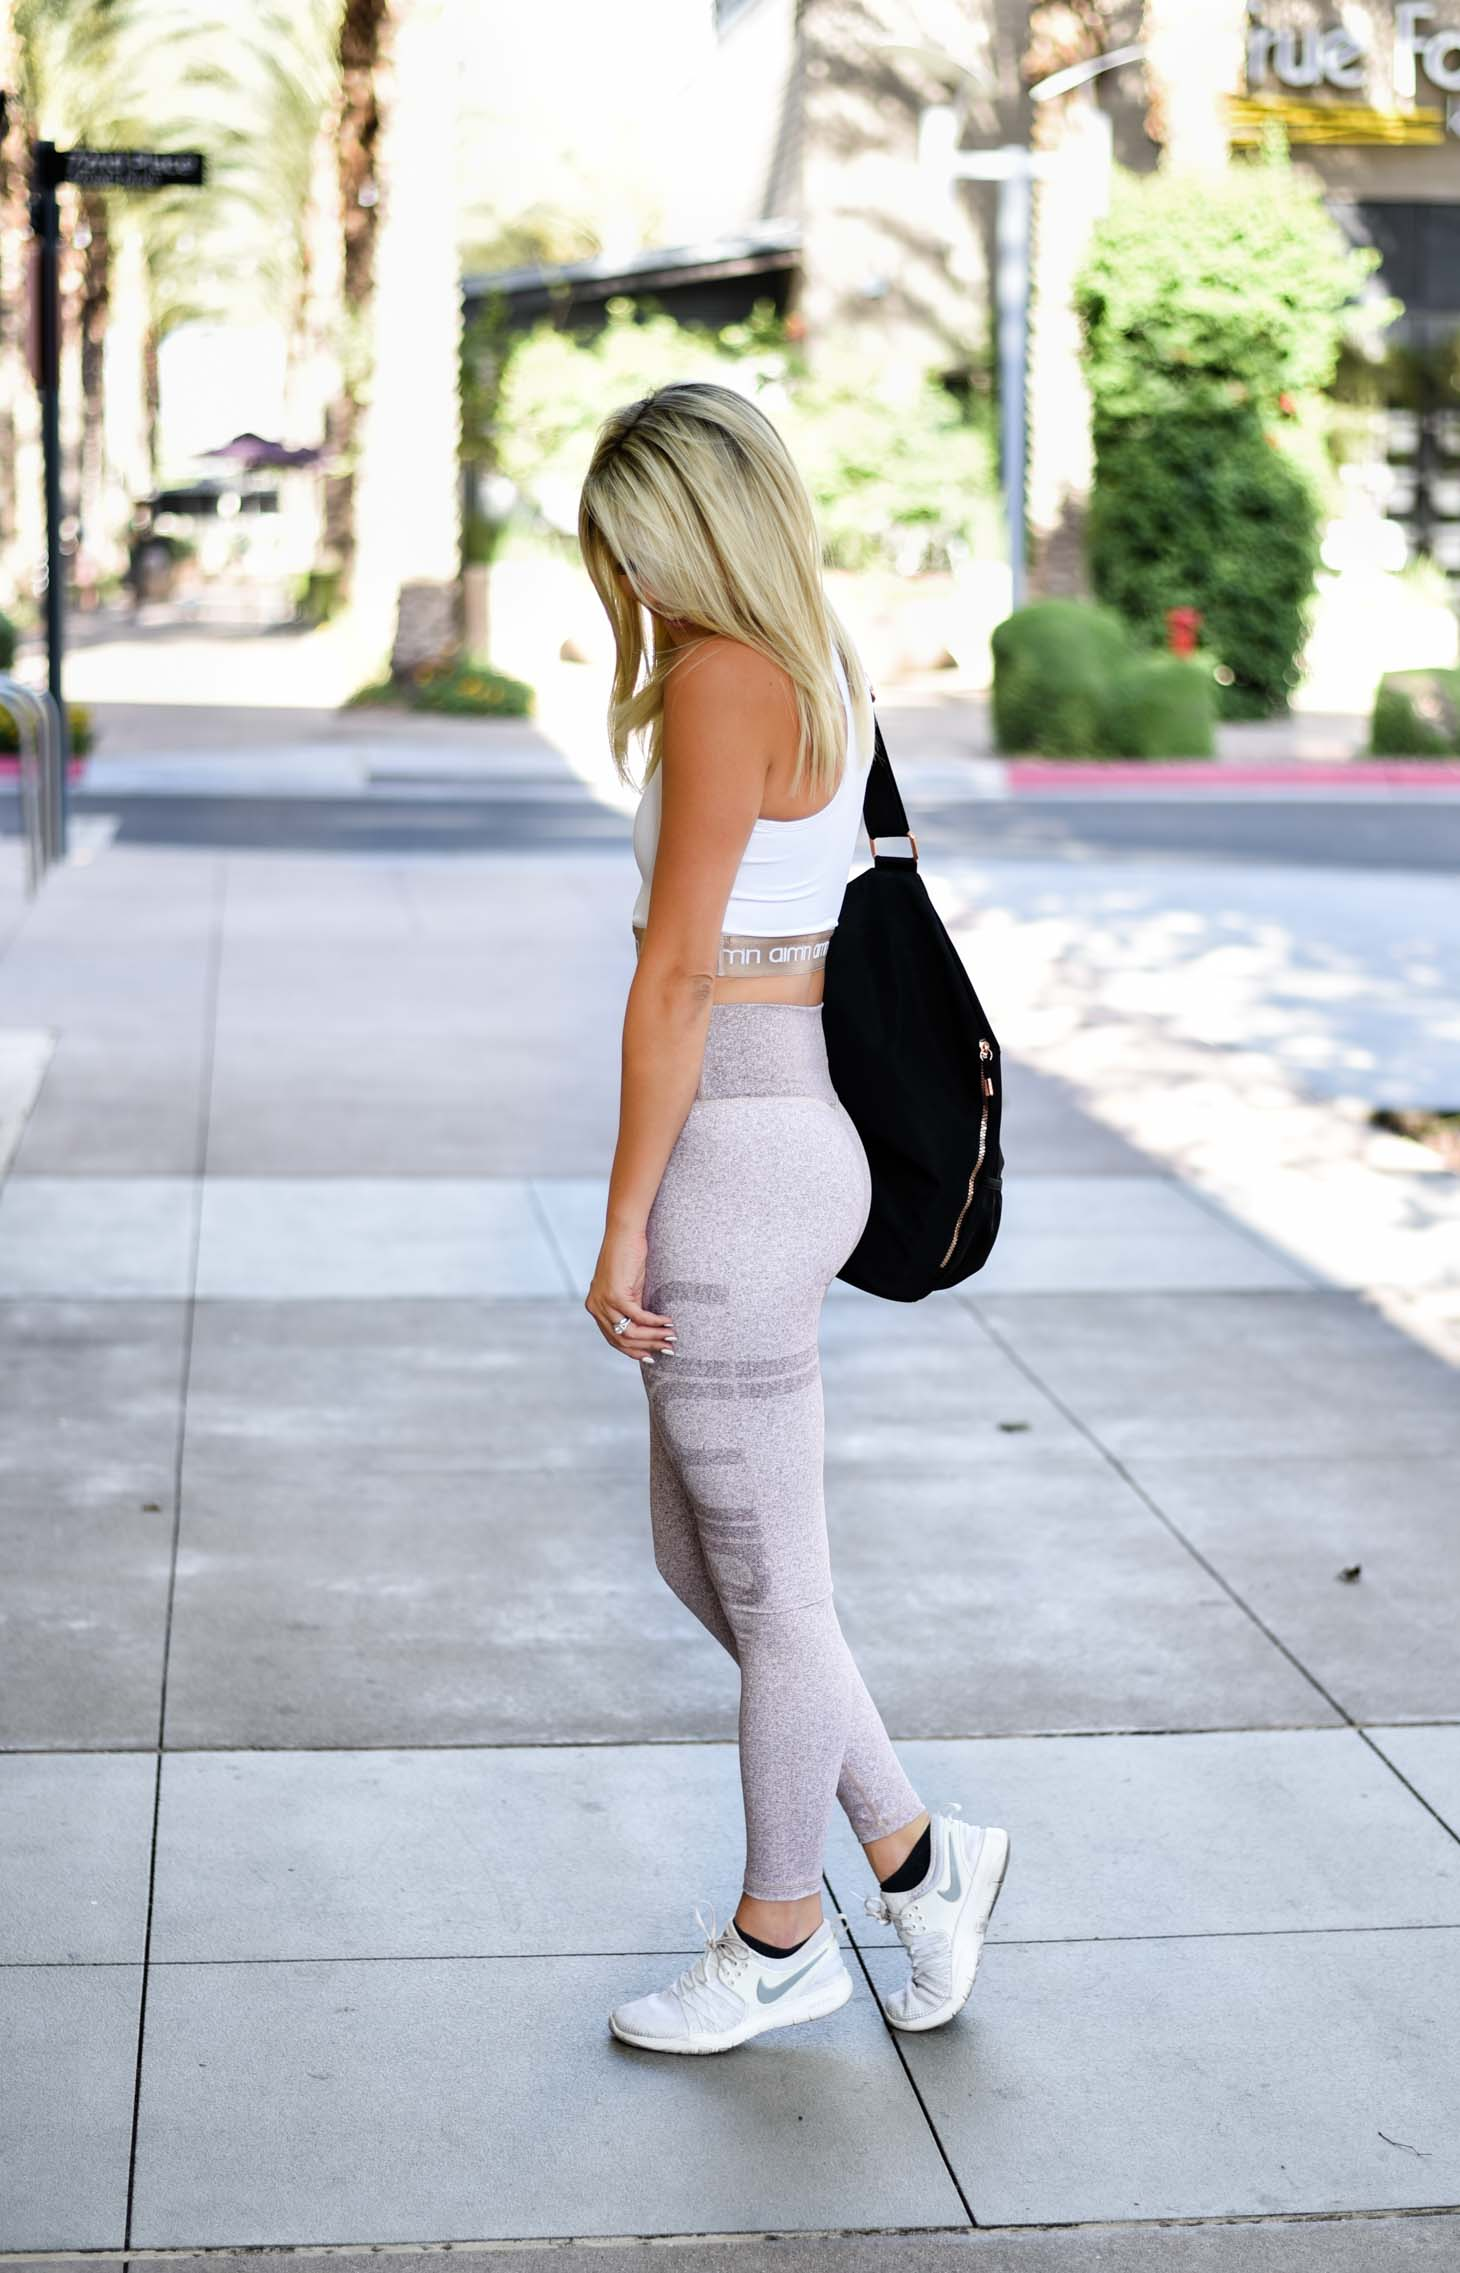 Erin Elizabeth of Wink and a Twirl shares this Aimn Athleisure Look for Workout Style Inspiration